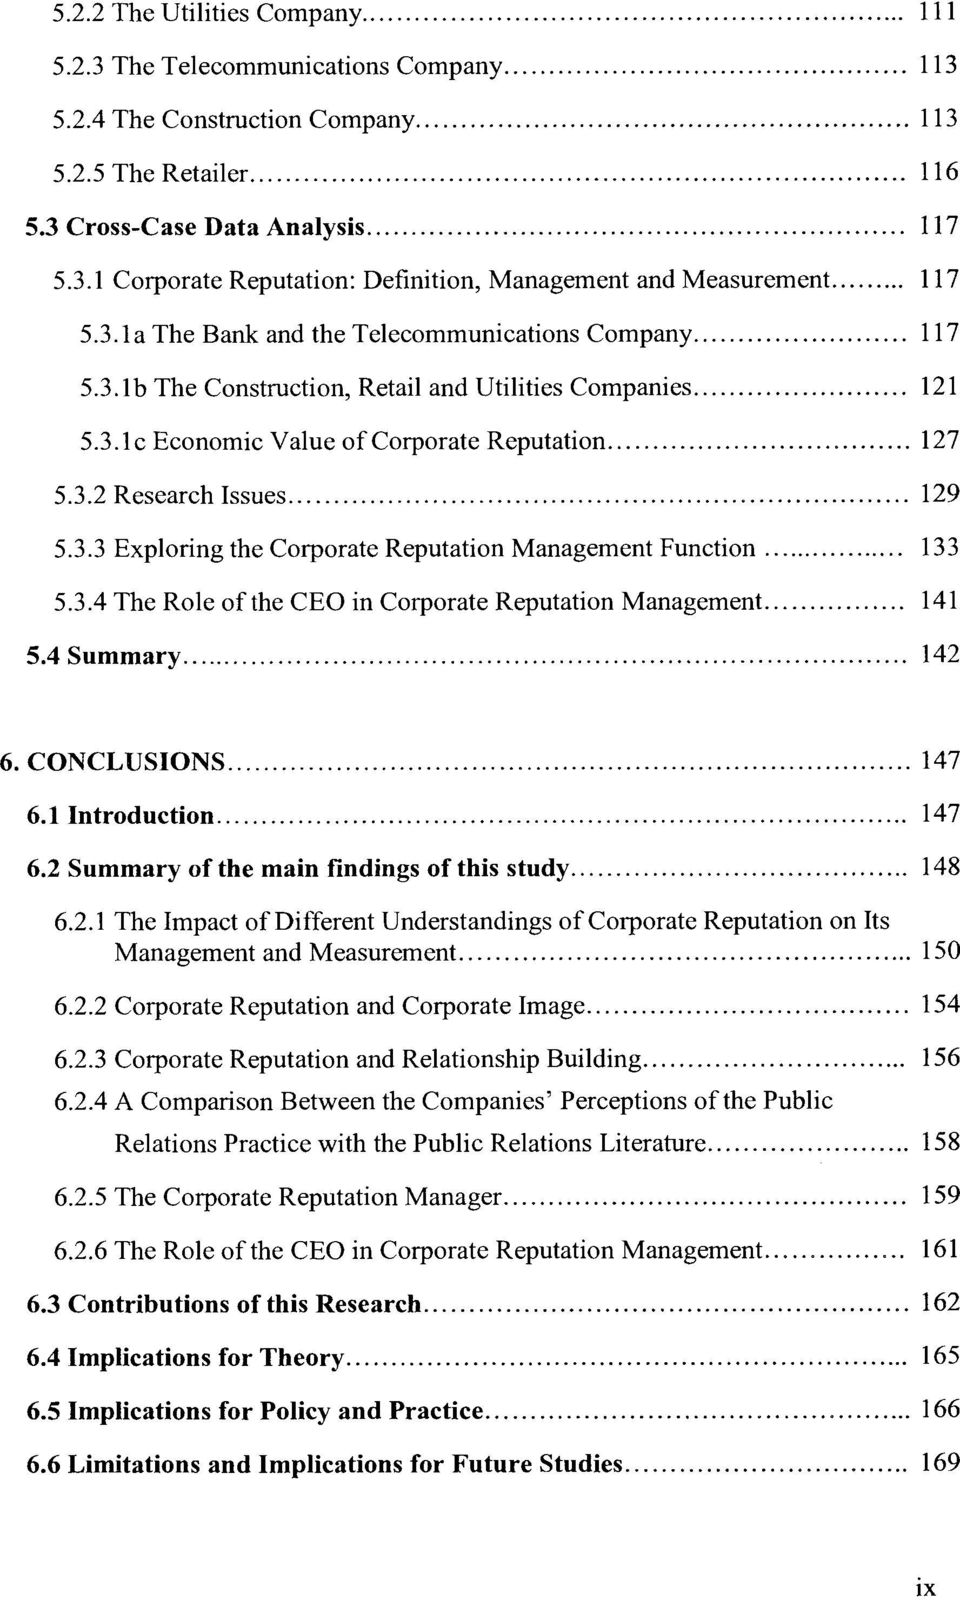 .. 129 5.3.3 Exploring the Corporate Reputation Management Function... 133 5.3.4 The Role of the CEO in Corporate Reputation Management... 141 5.4 Summary... 142 6. CONCLUSIONS... 147 6.